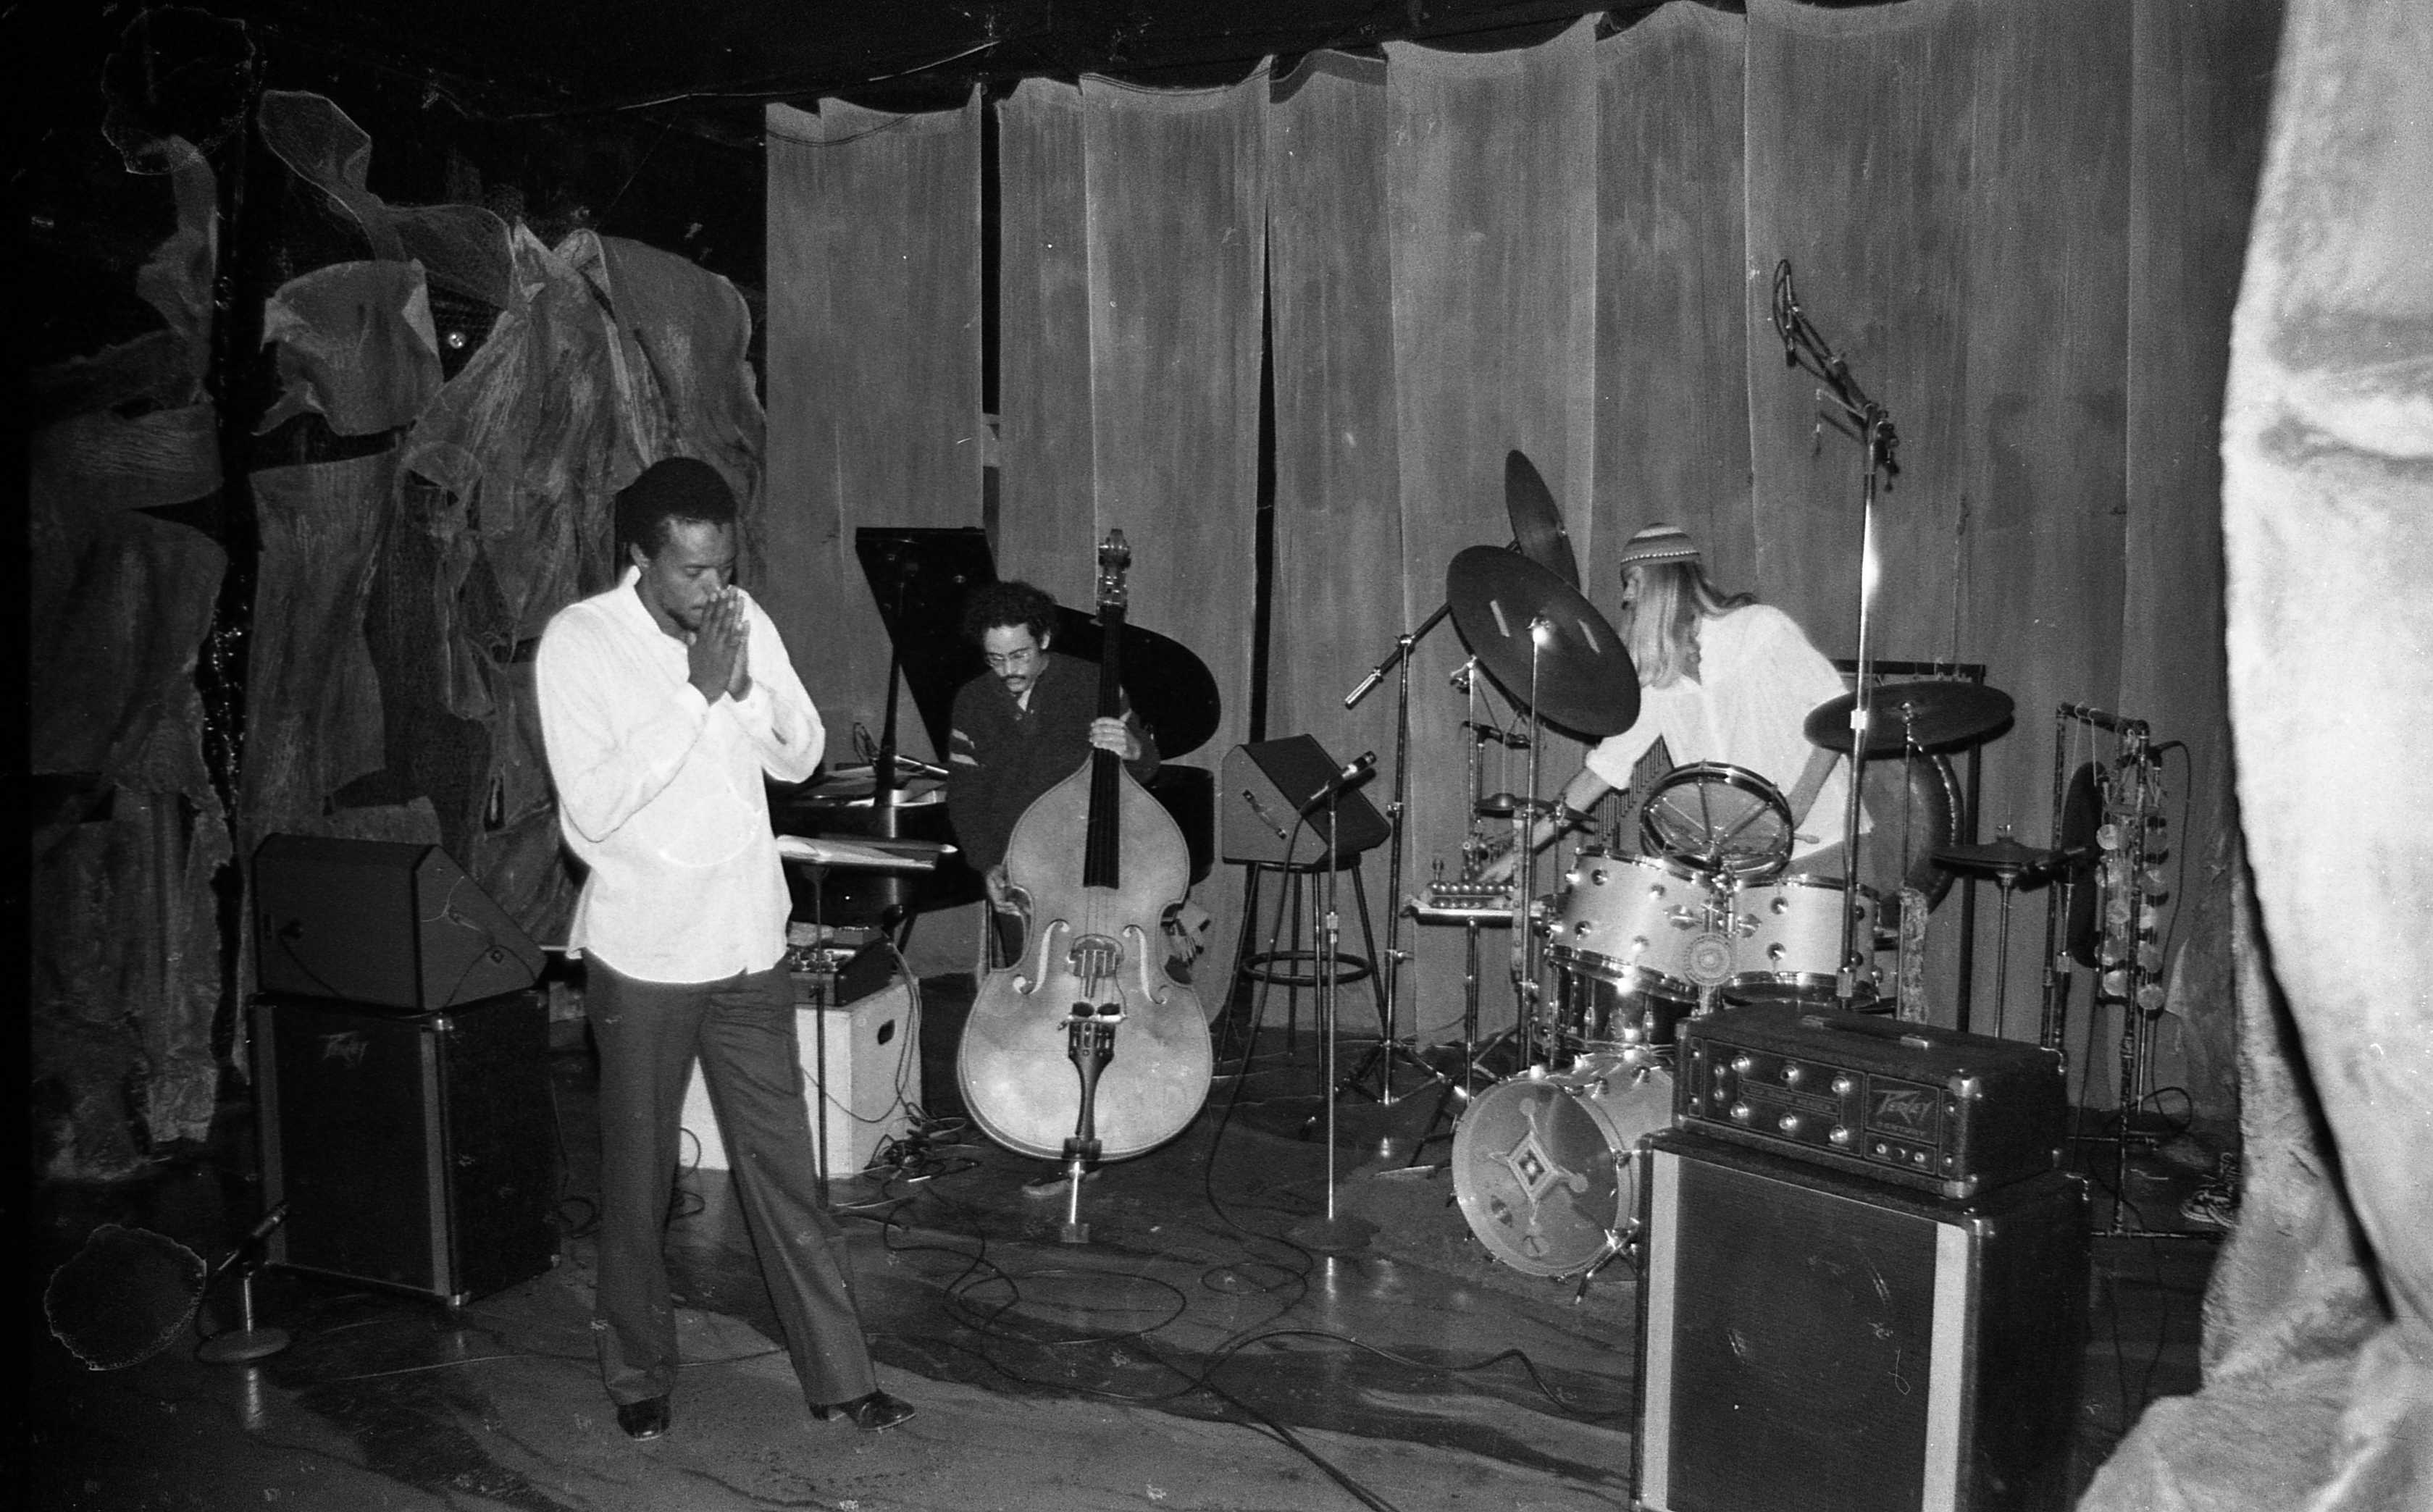 Horace.... This trio -- a brief moment - was quite SMOKIN', I think. It was so amazing to Alex and to me that this ever happened: Horace Tapscott with Roberto Miranda (who played with Horace for years and years) and my longhair brother Alex... I think that Peavey amp right in front on the right was Roberto's wacky bass rig at the time, set up way far away from him. Roberto had many eccentricities... Horace is a bit difficult to describe/explain to those who nothing about him (which may be more people than I care to think about). His regular concerts with the Pan-Afrikan Peoples Arkestra (please check my spelling) had a scope and significance beyond music. But musically speaking, it nurtured the talents of so many musicians, many of whom really stood out and the most famous of whom was Arthur Blythe. But Jesse Sharps, Fritz Wise, Donald Dean, Adele Sebastian (someday I suppose someone should write something about this talented and charismatic young flutist who died so young - a truly beautiful human)...a lot of wonderful players. Horace was like royalty or something. We were in awe of him. His earlier stance was pretty intense and a little fearsome, but he was really one of the warmest people, and he really represented art/jazz, his community, and the dignity and power of an African-American. His presence was almost staggering, his playing knotty and unpredictable. He was a real leader. And he could disarm anyone with that smile of his and with his embrace. Alex and I attended his funeral, which was in a huge church with a huge crowd attending. And I don't want this to sound weird, but looking at him in the open casket lying in state with a fez on.... he looked like a king. Regal. Stunning. I guess I'll stop there. ----- photo by Mark Weber – February 10, 1980 Century City Playhouse